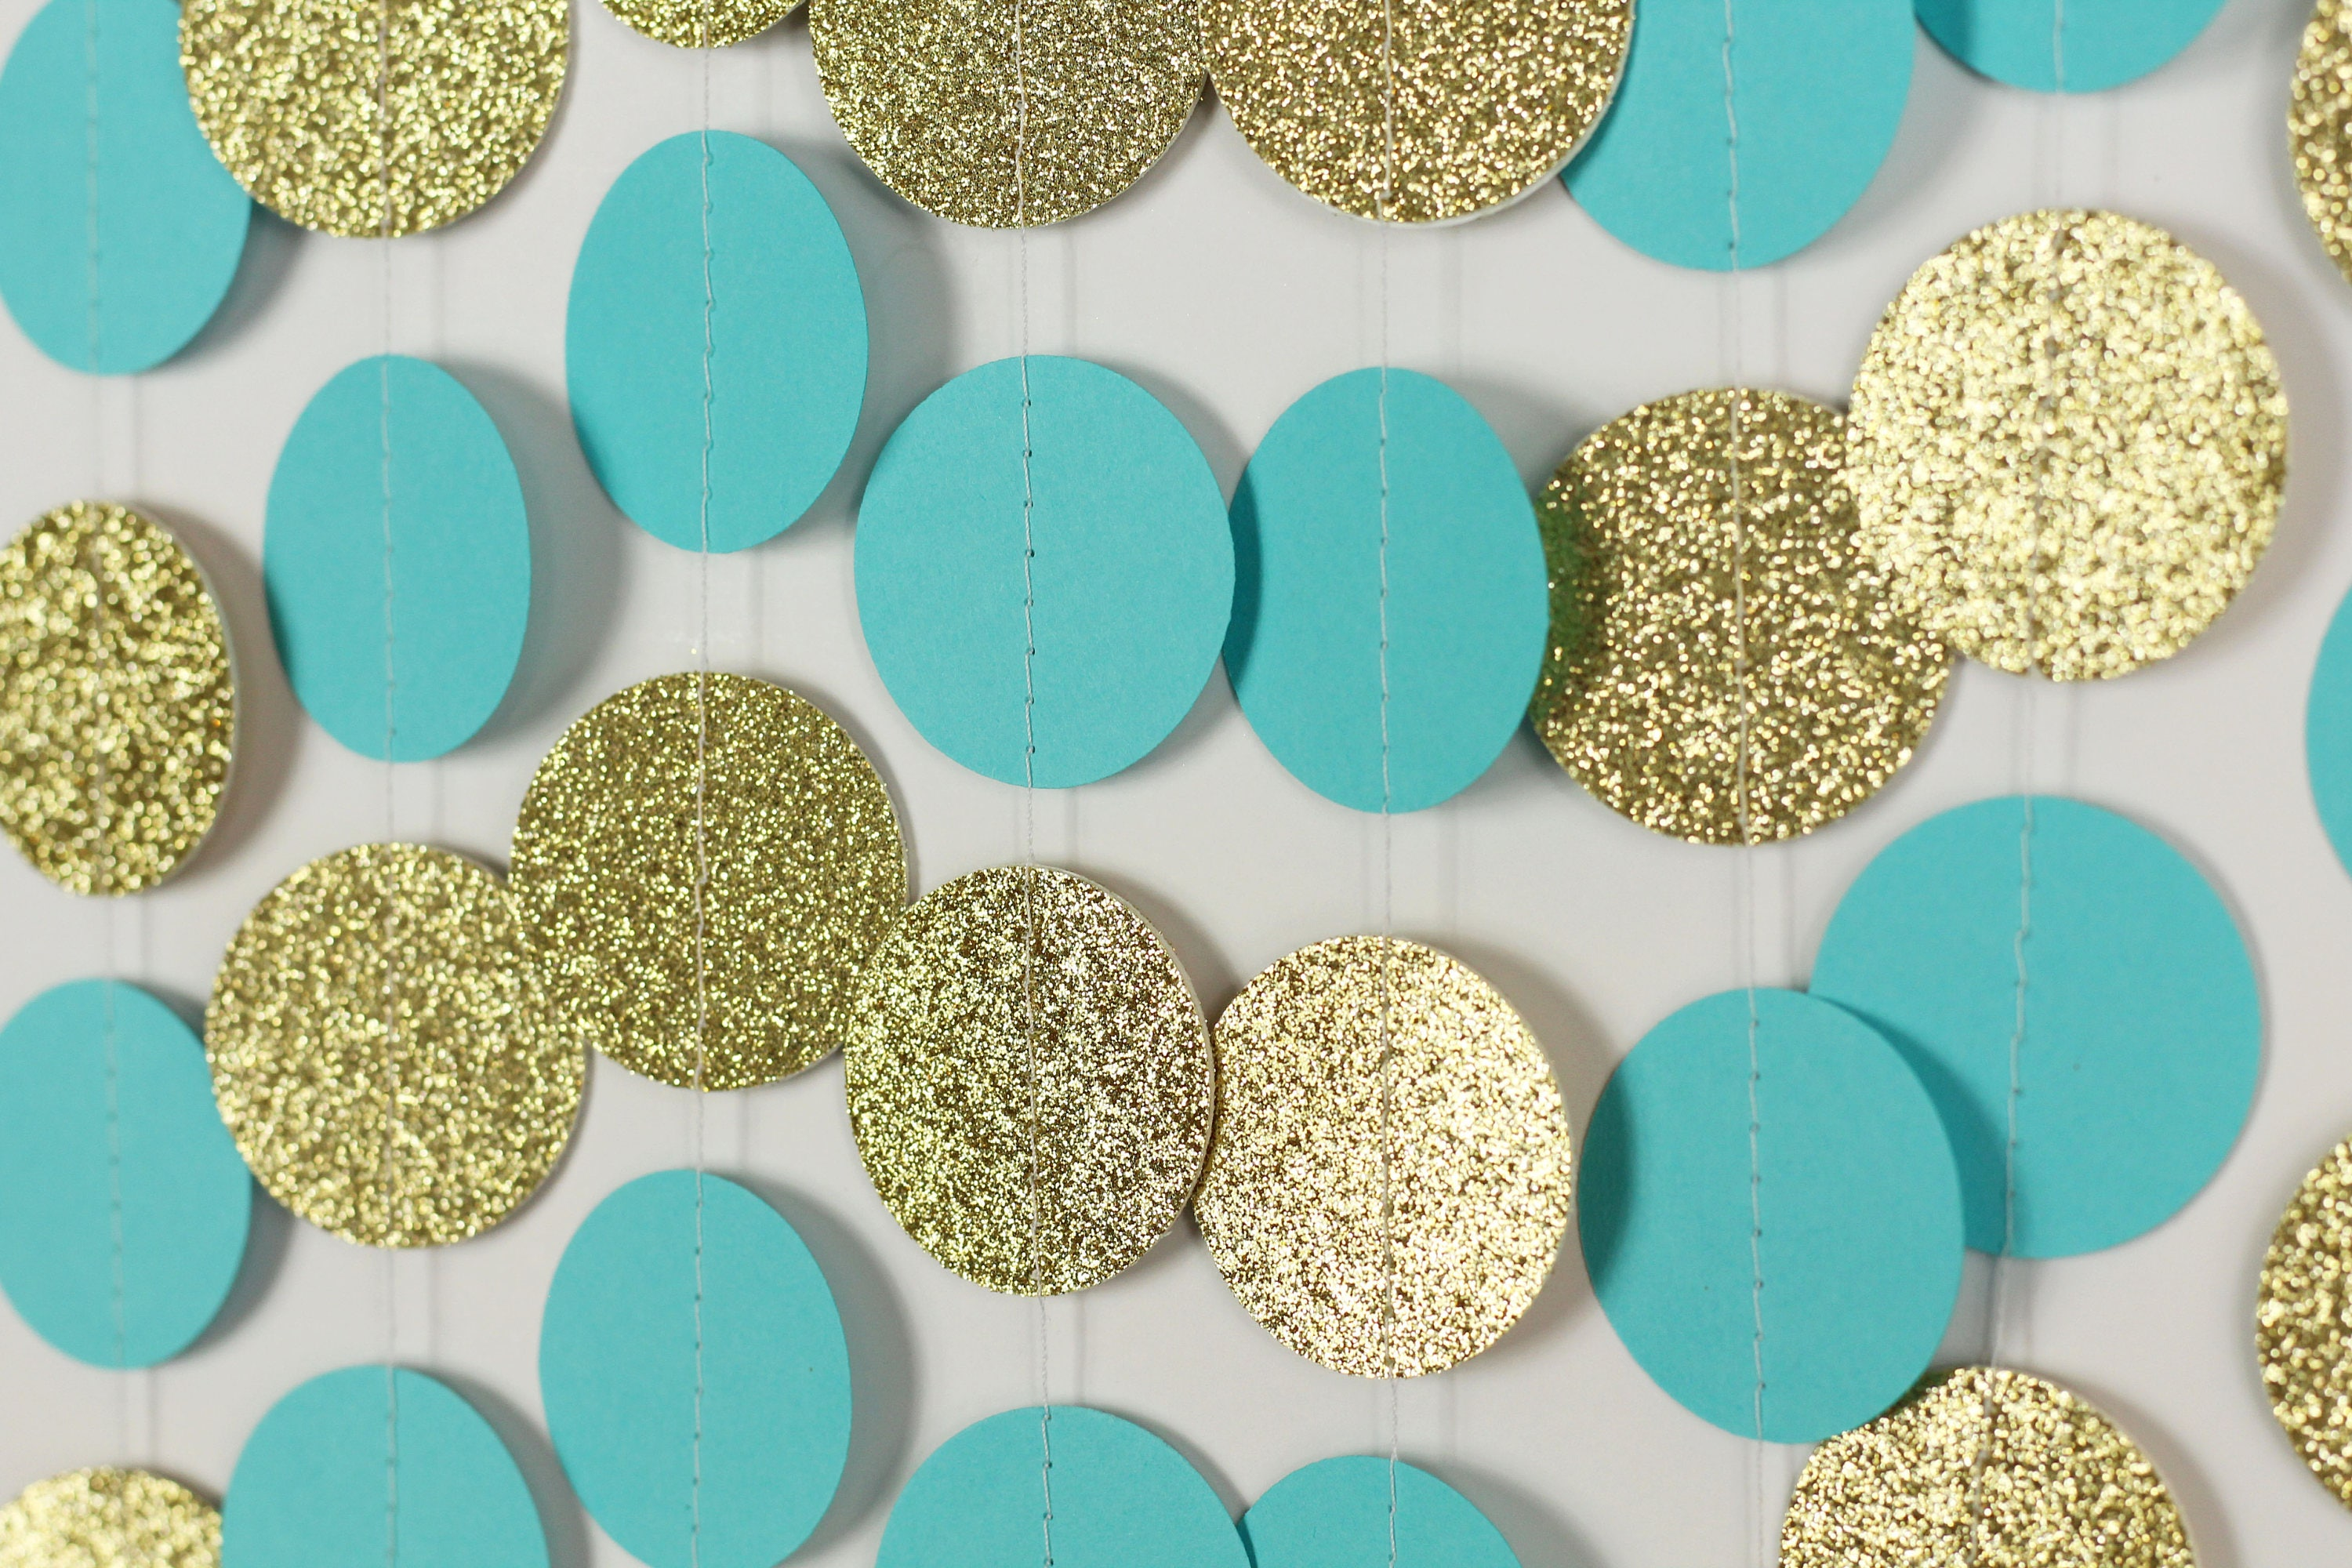 Turquoise and Gold Glitter Garland Turquoise Wedding Decor